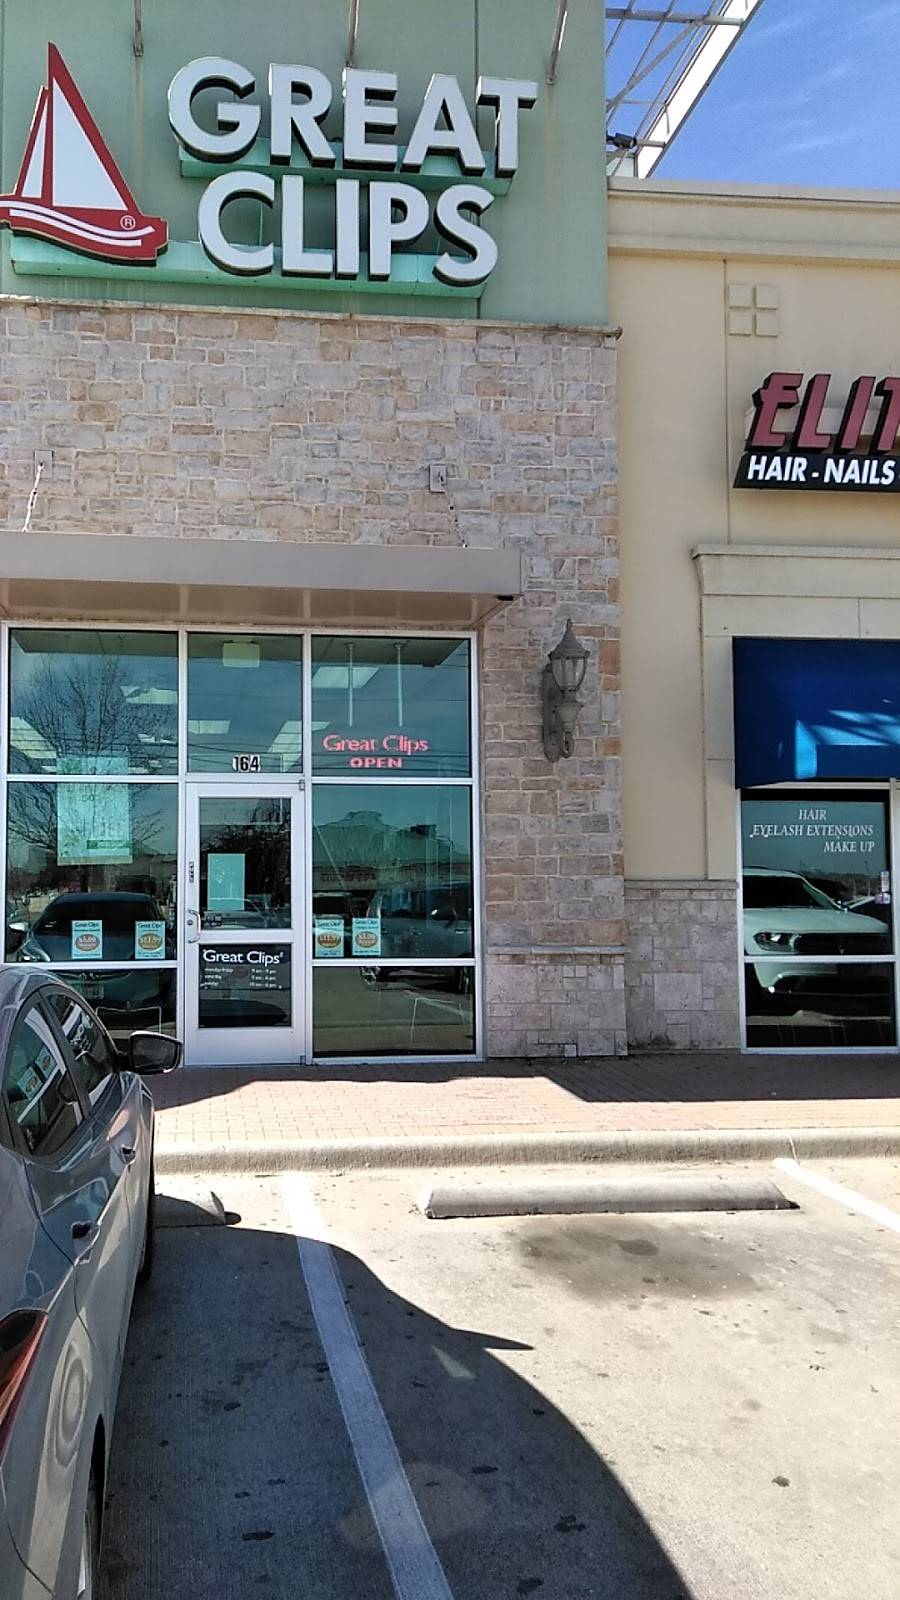 Great Clips - hair care  | Photo 2 of 8 | Address: 900 N Blue Mound Rd Ste 164, Saginaw, TX 76131, USA | Phone: (817) 847-7570